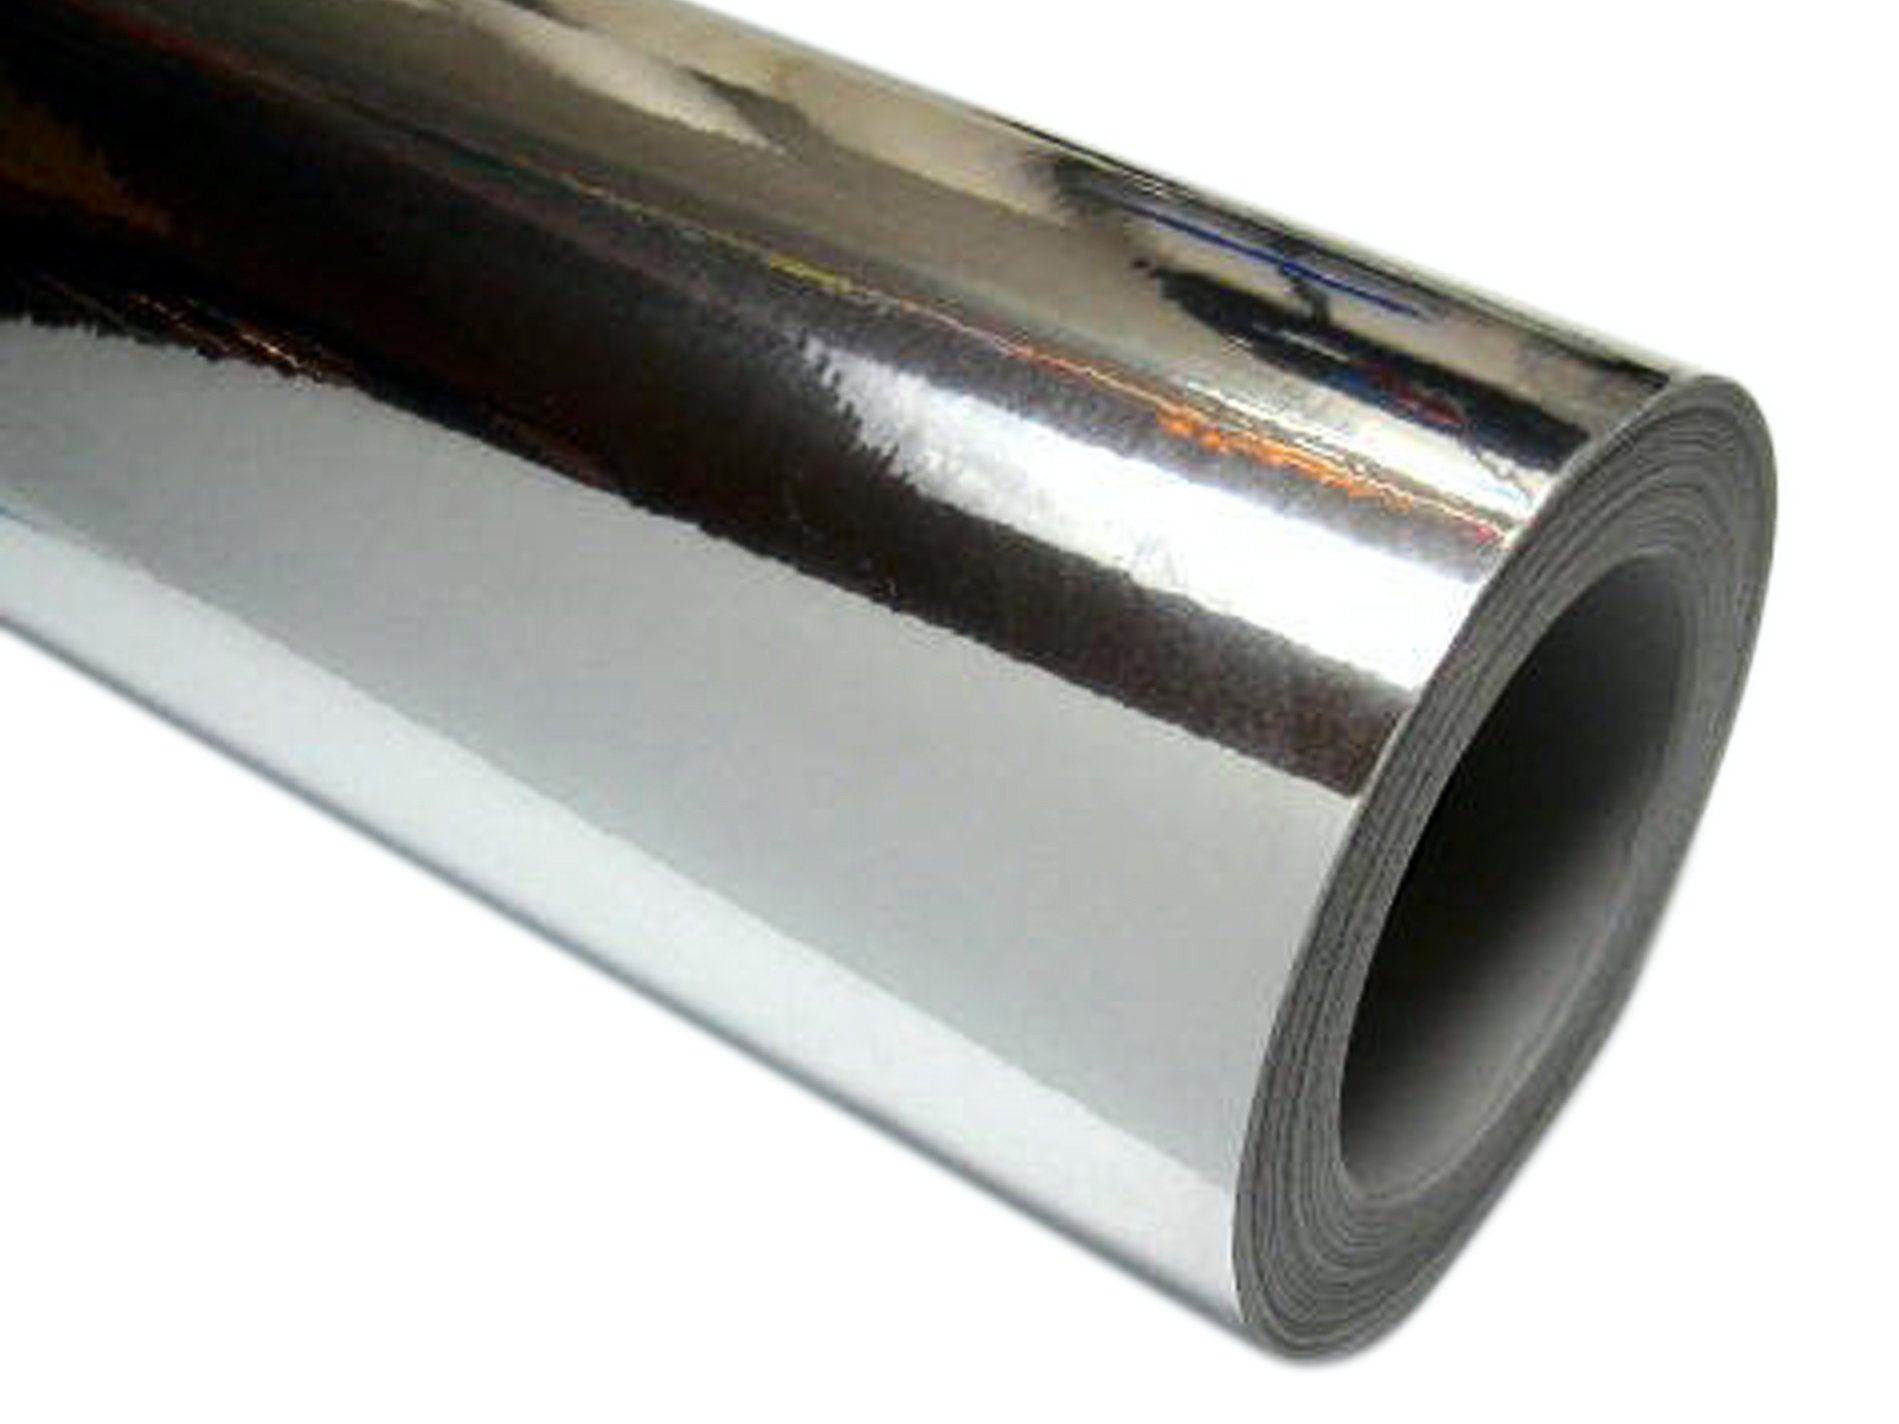 24'' x 150 ft ( 50 yards) Roll of SILVER(CHROME MIRROR) Repositionable Adhesive-Backed Vinyl for Craft Cutters, Punches and Vinyl Sign Cutters